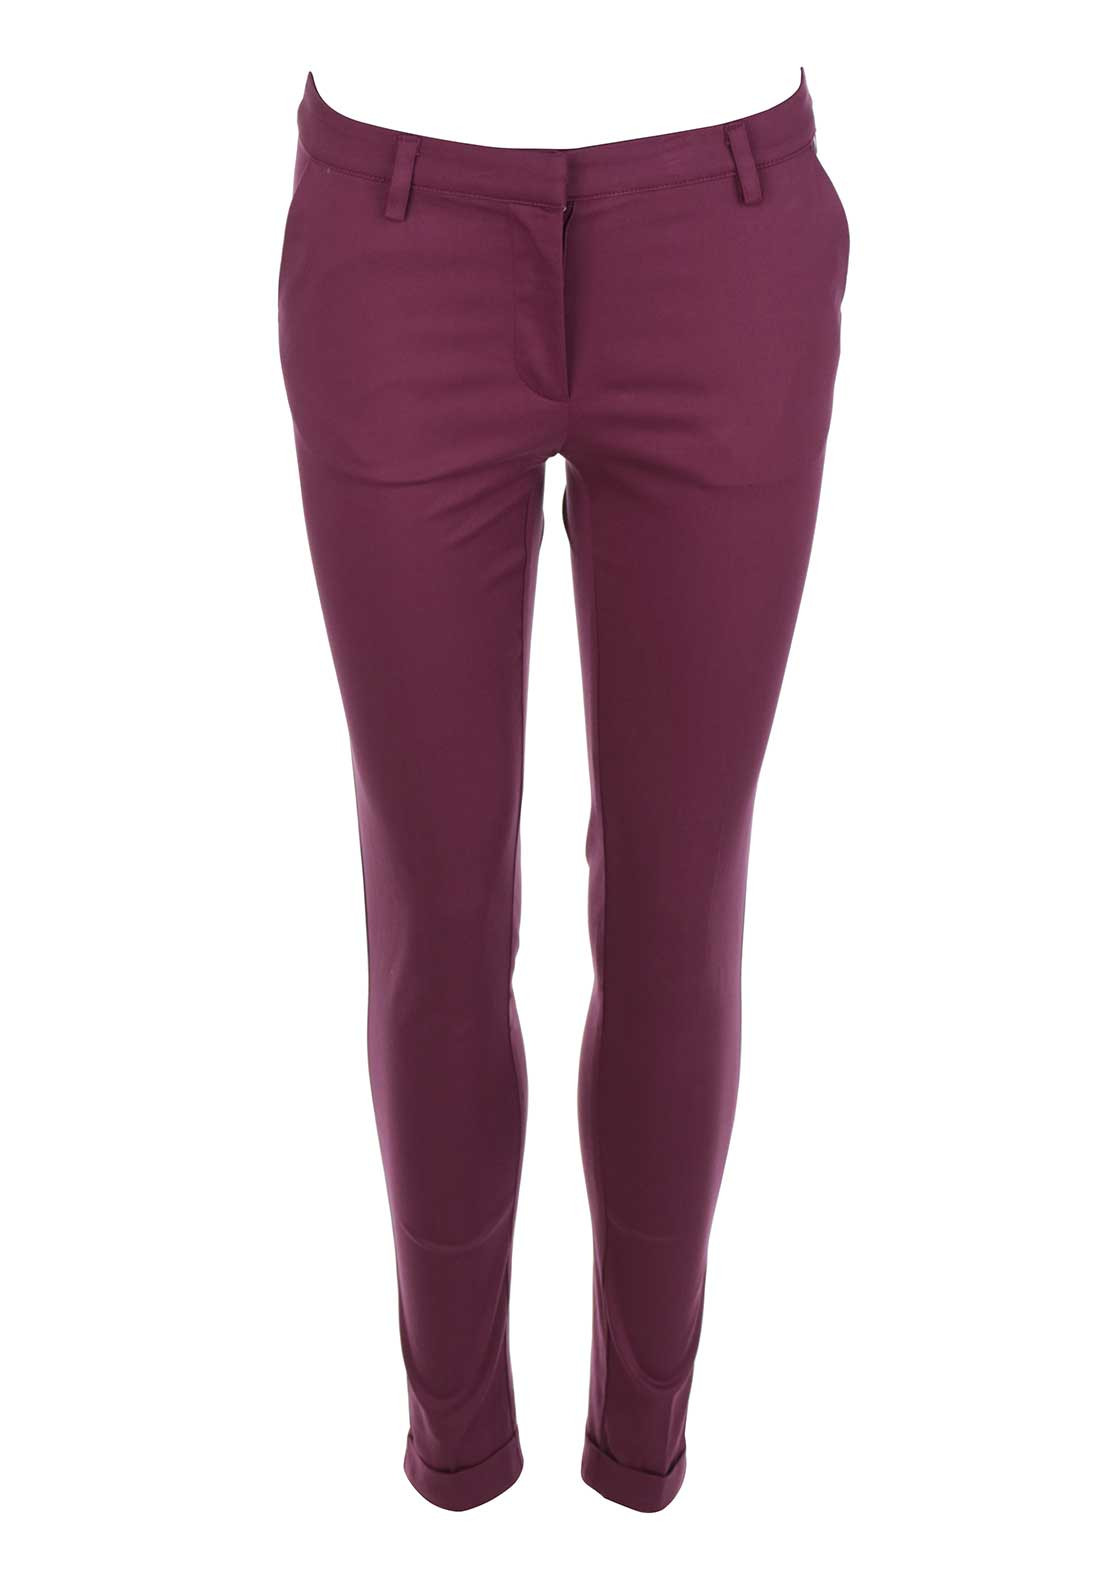 Rant & Rave Trudy Tailored 7/8 Trousers, Pink Rose